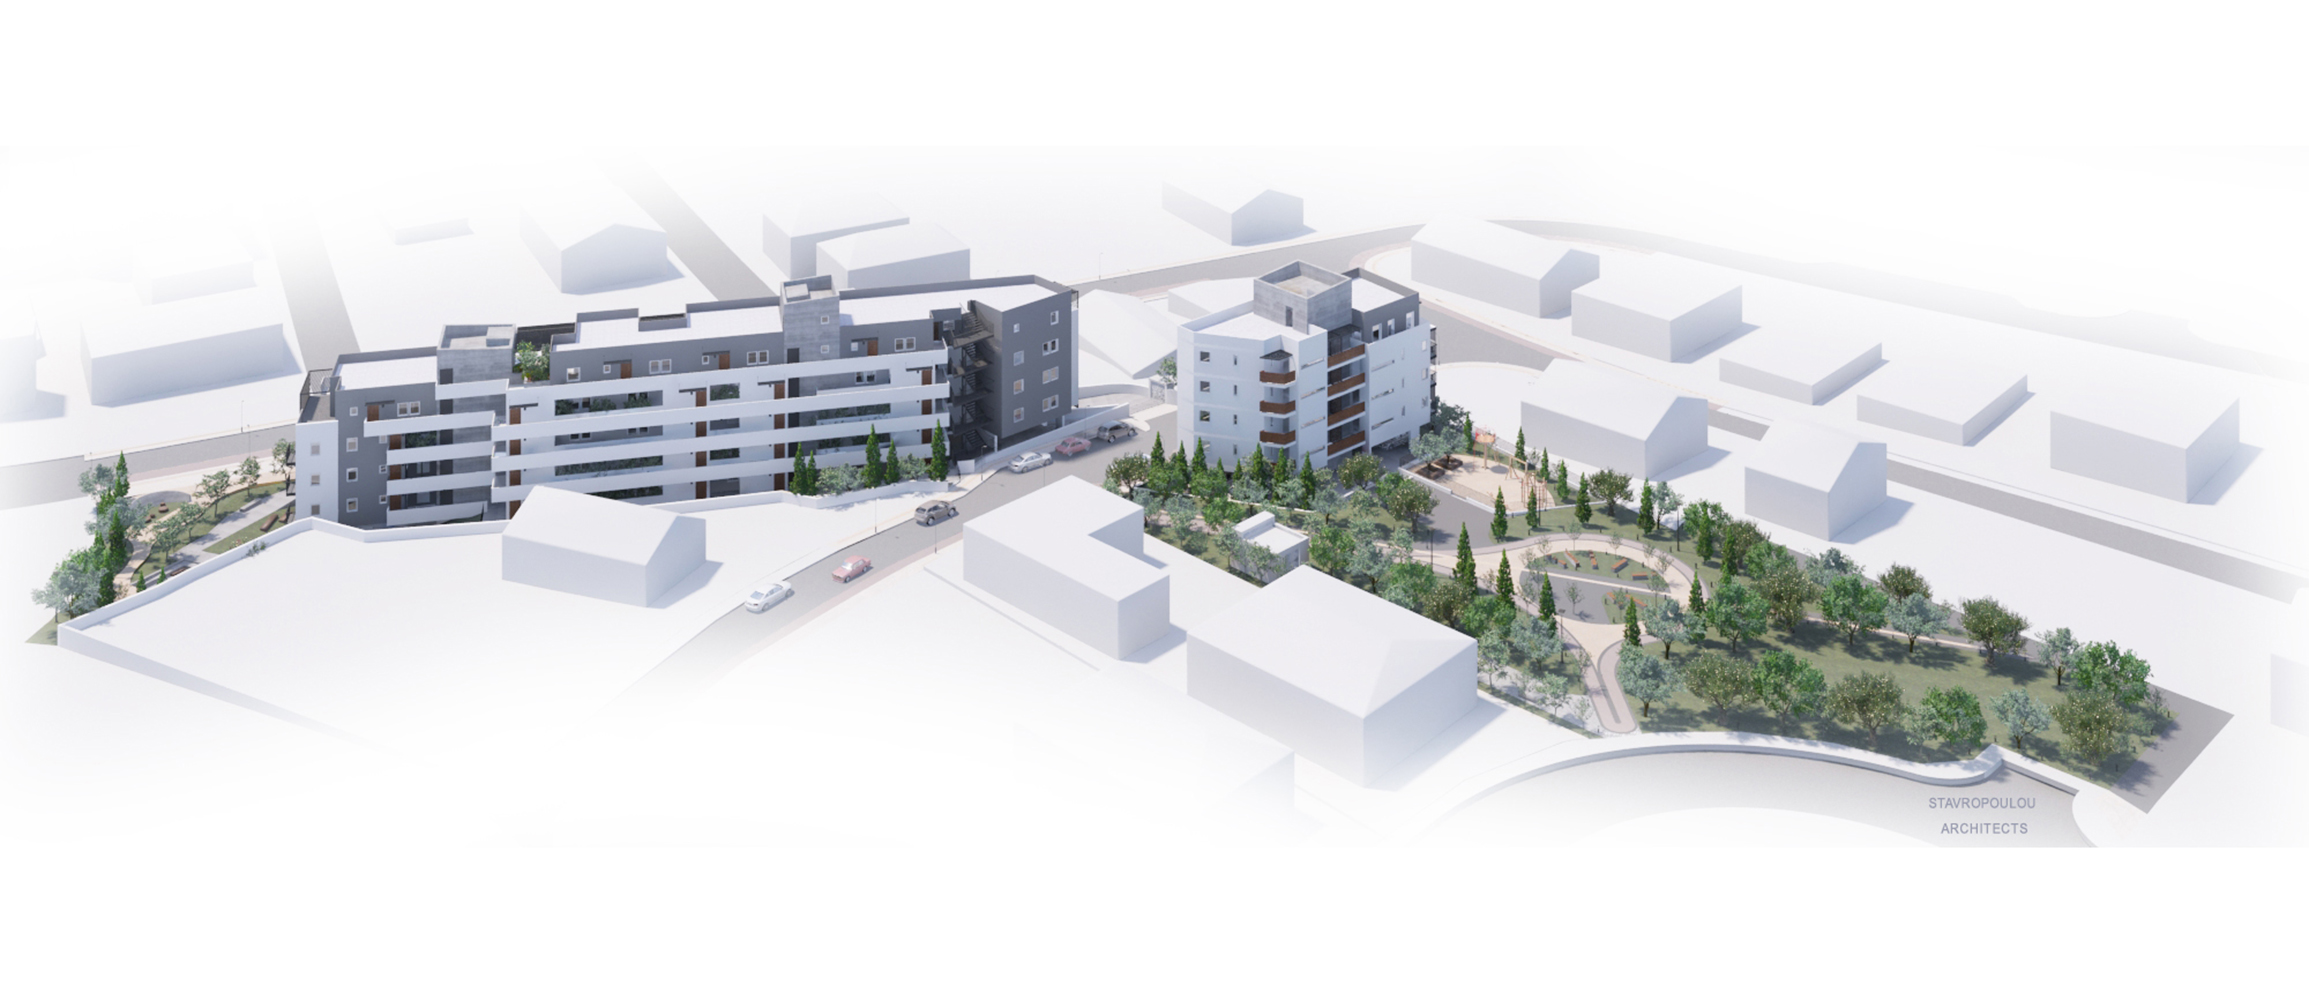 Social Housing designed by Stavropoulou Architects